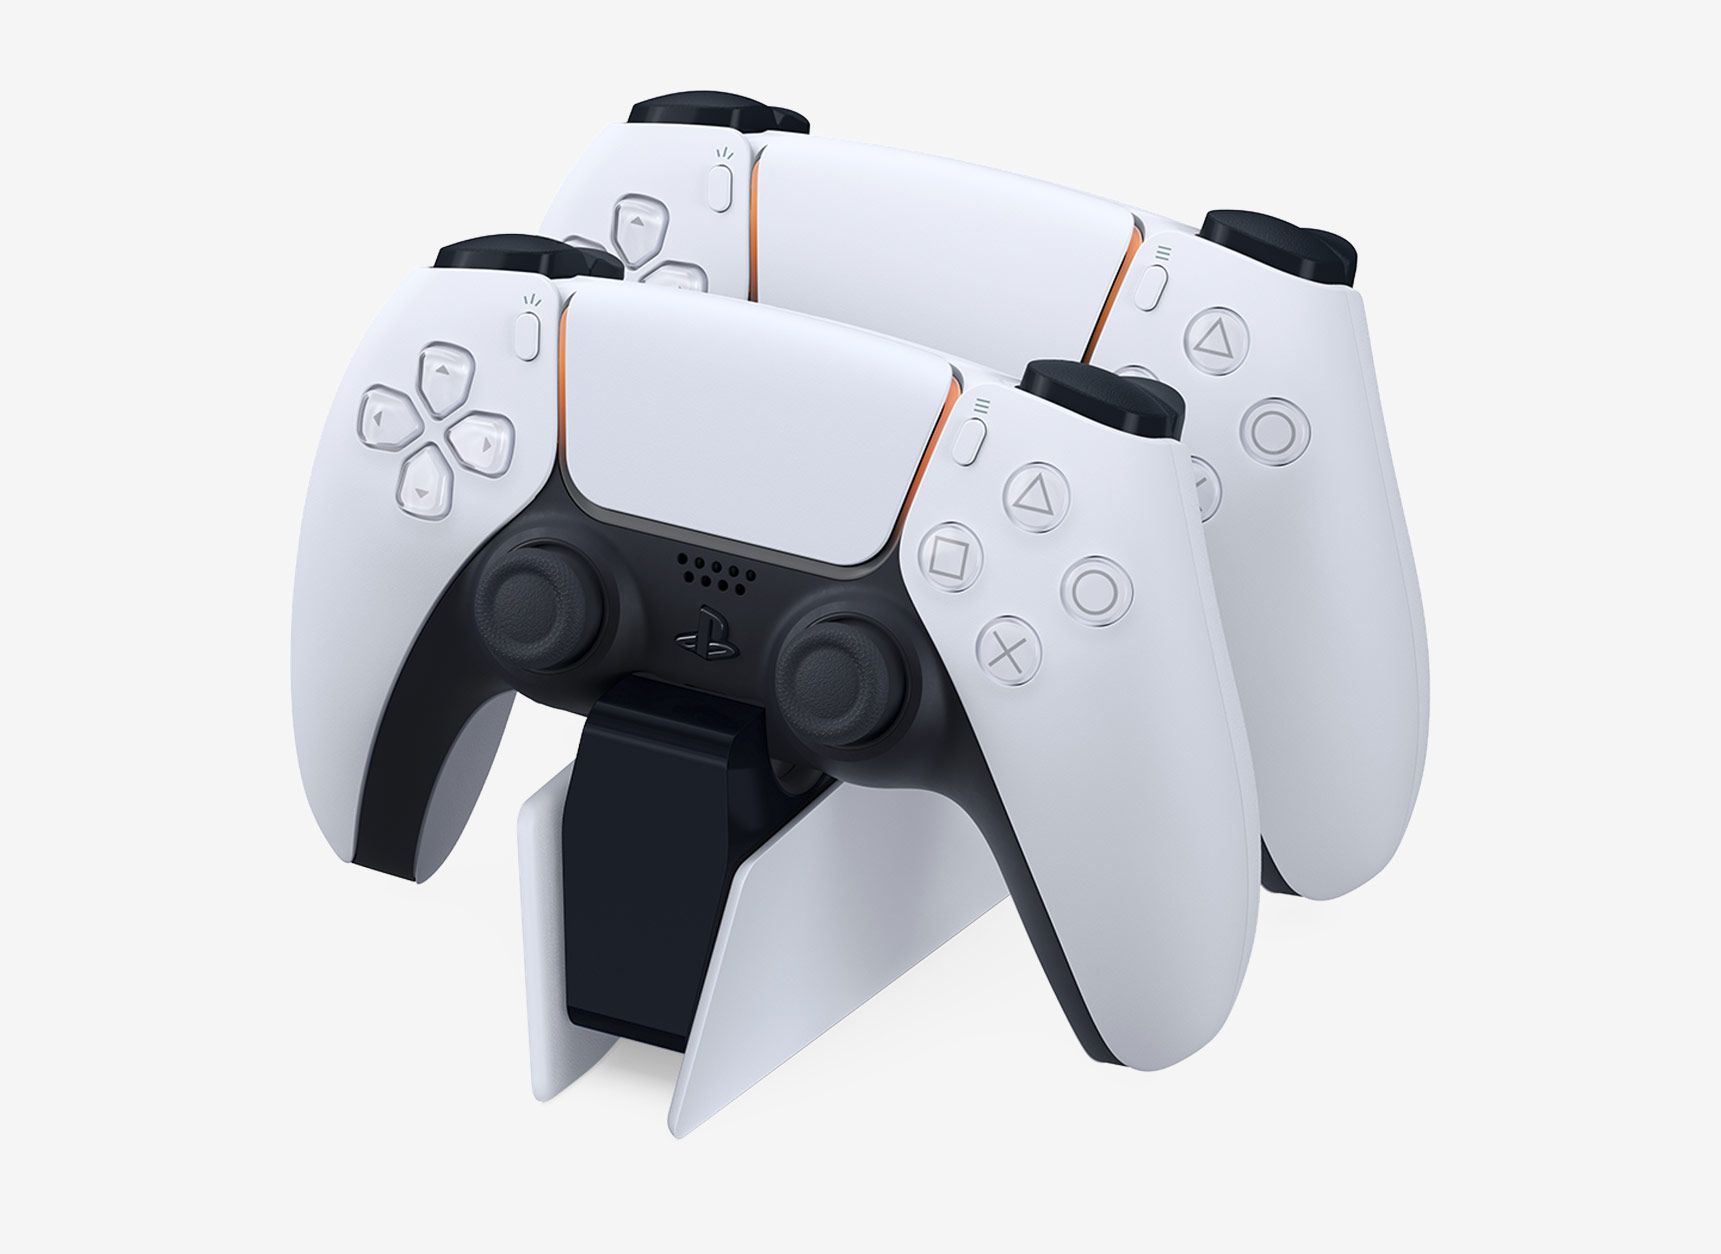 Sony PS5 Charging Station - xcite.com